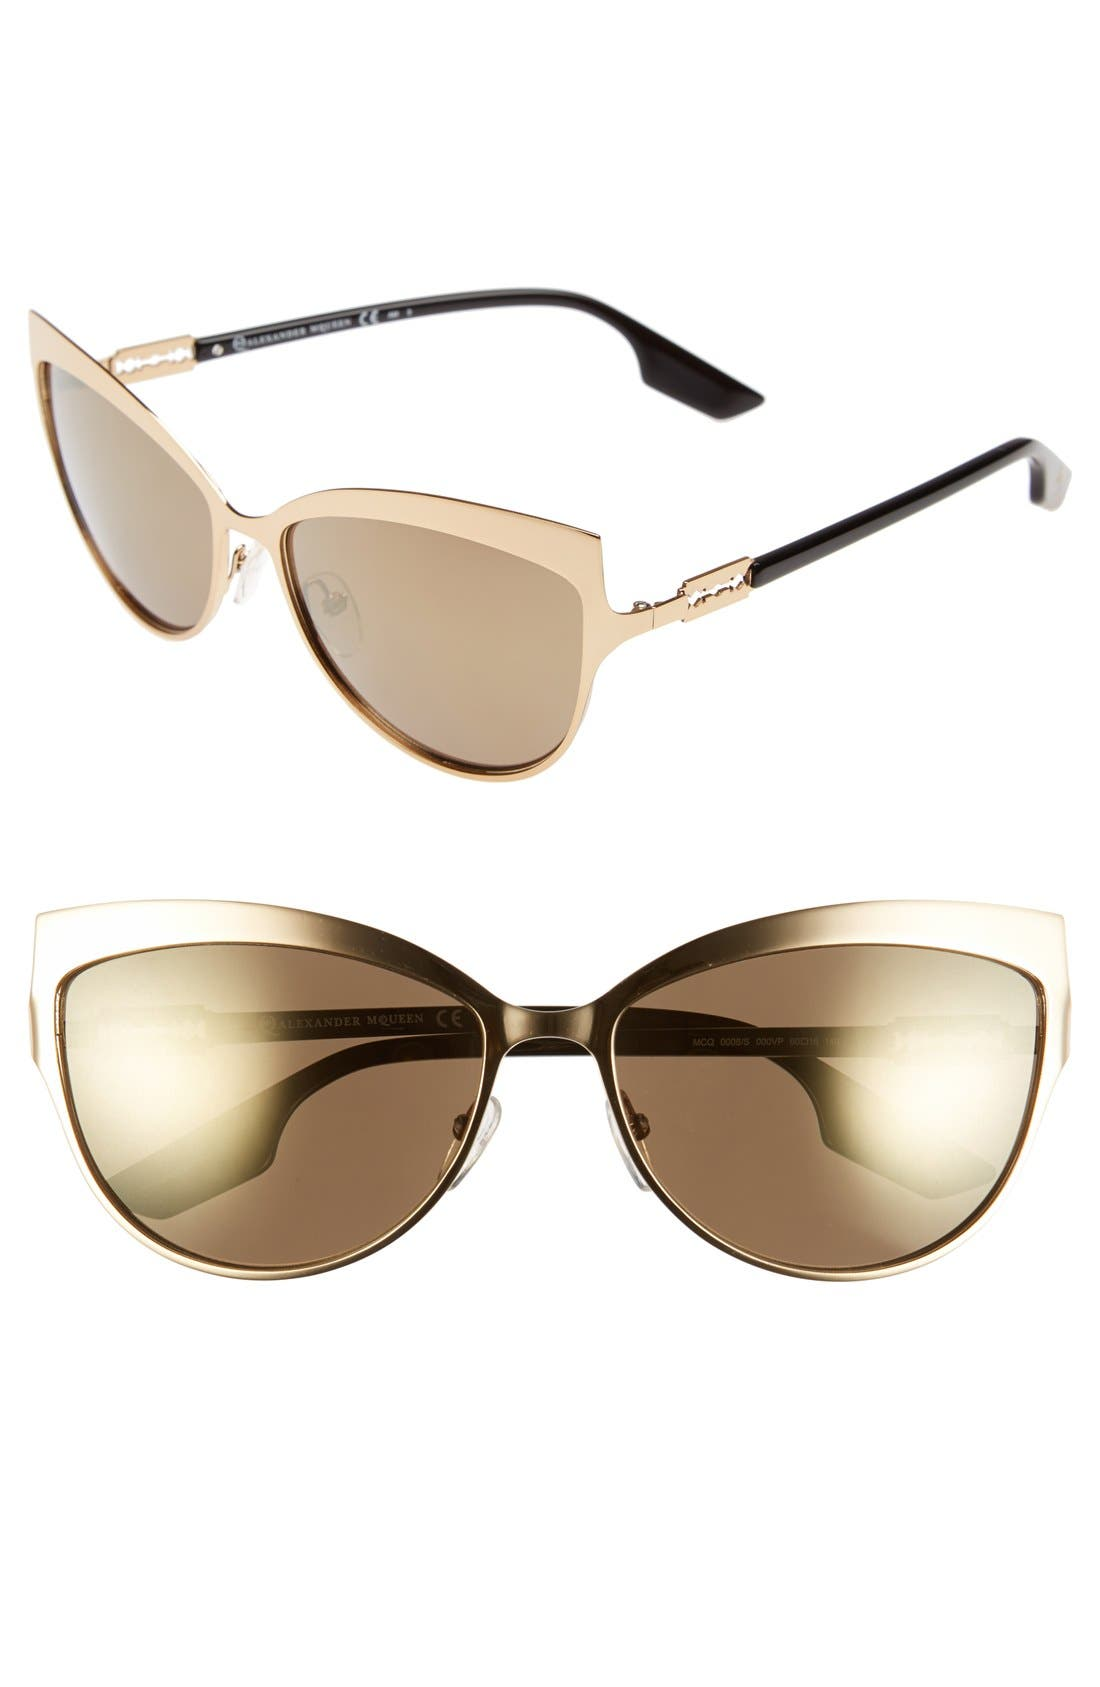 Main Image - McQ by Alexander McQueen 'Butterfly' 60mm Stainless Steel Sunglasses